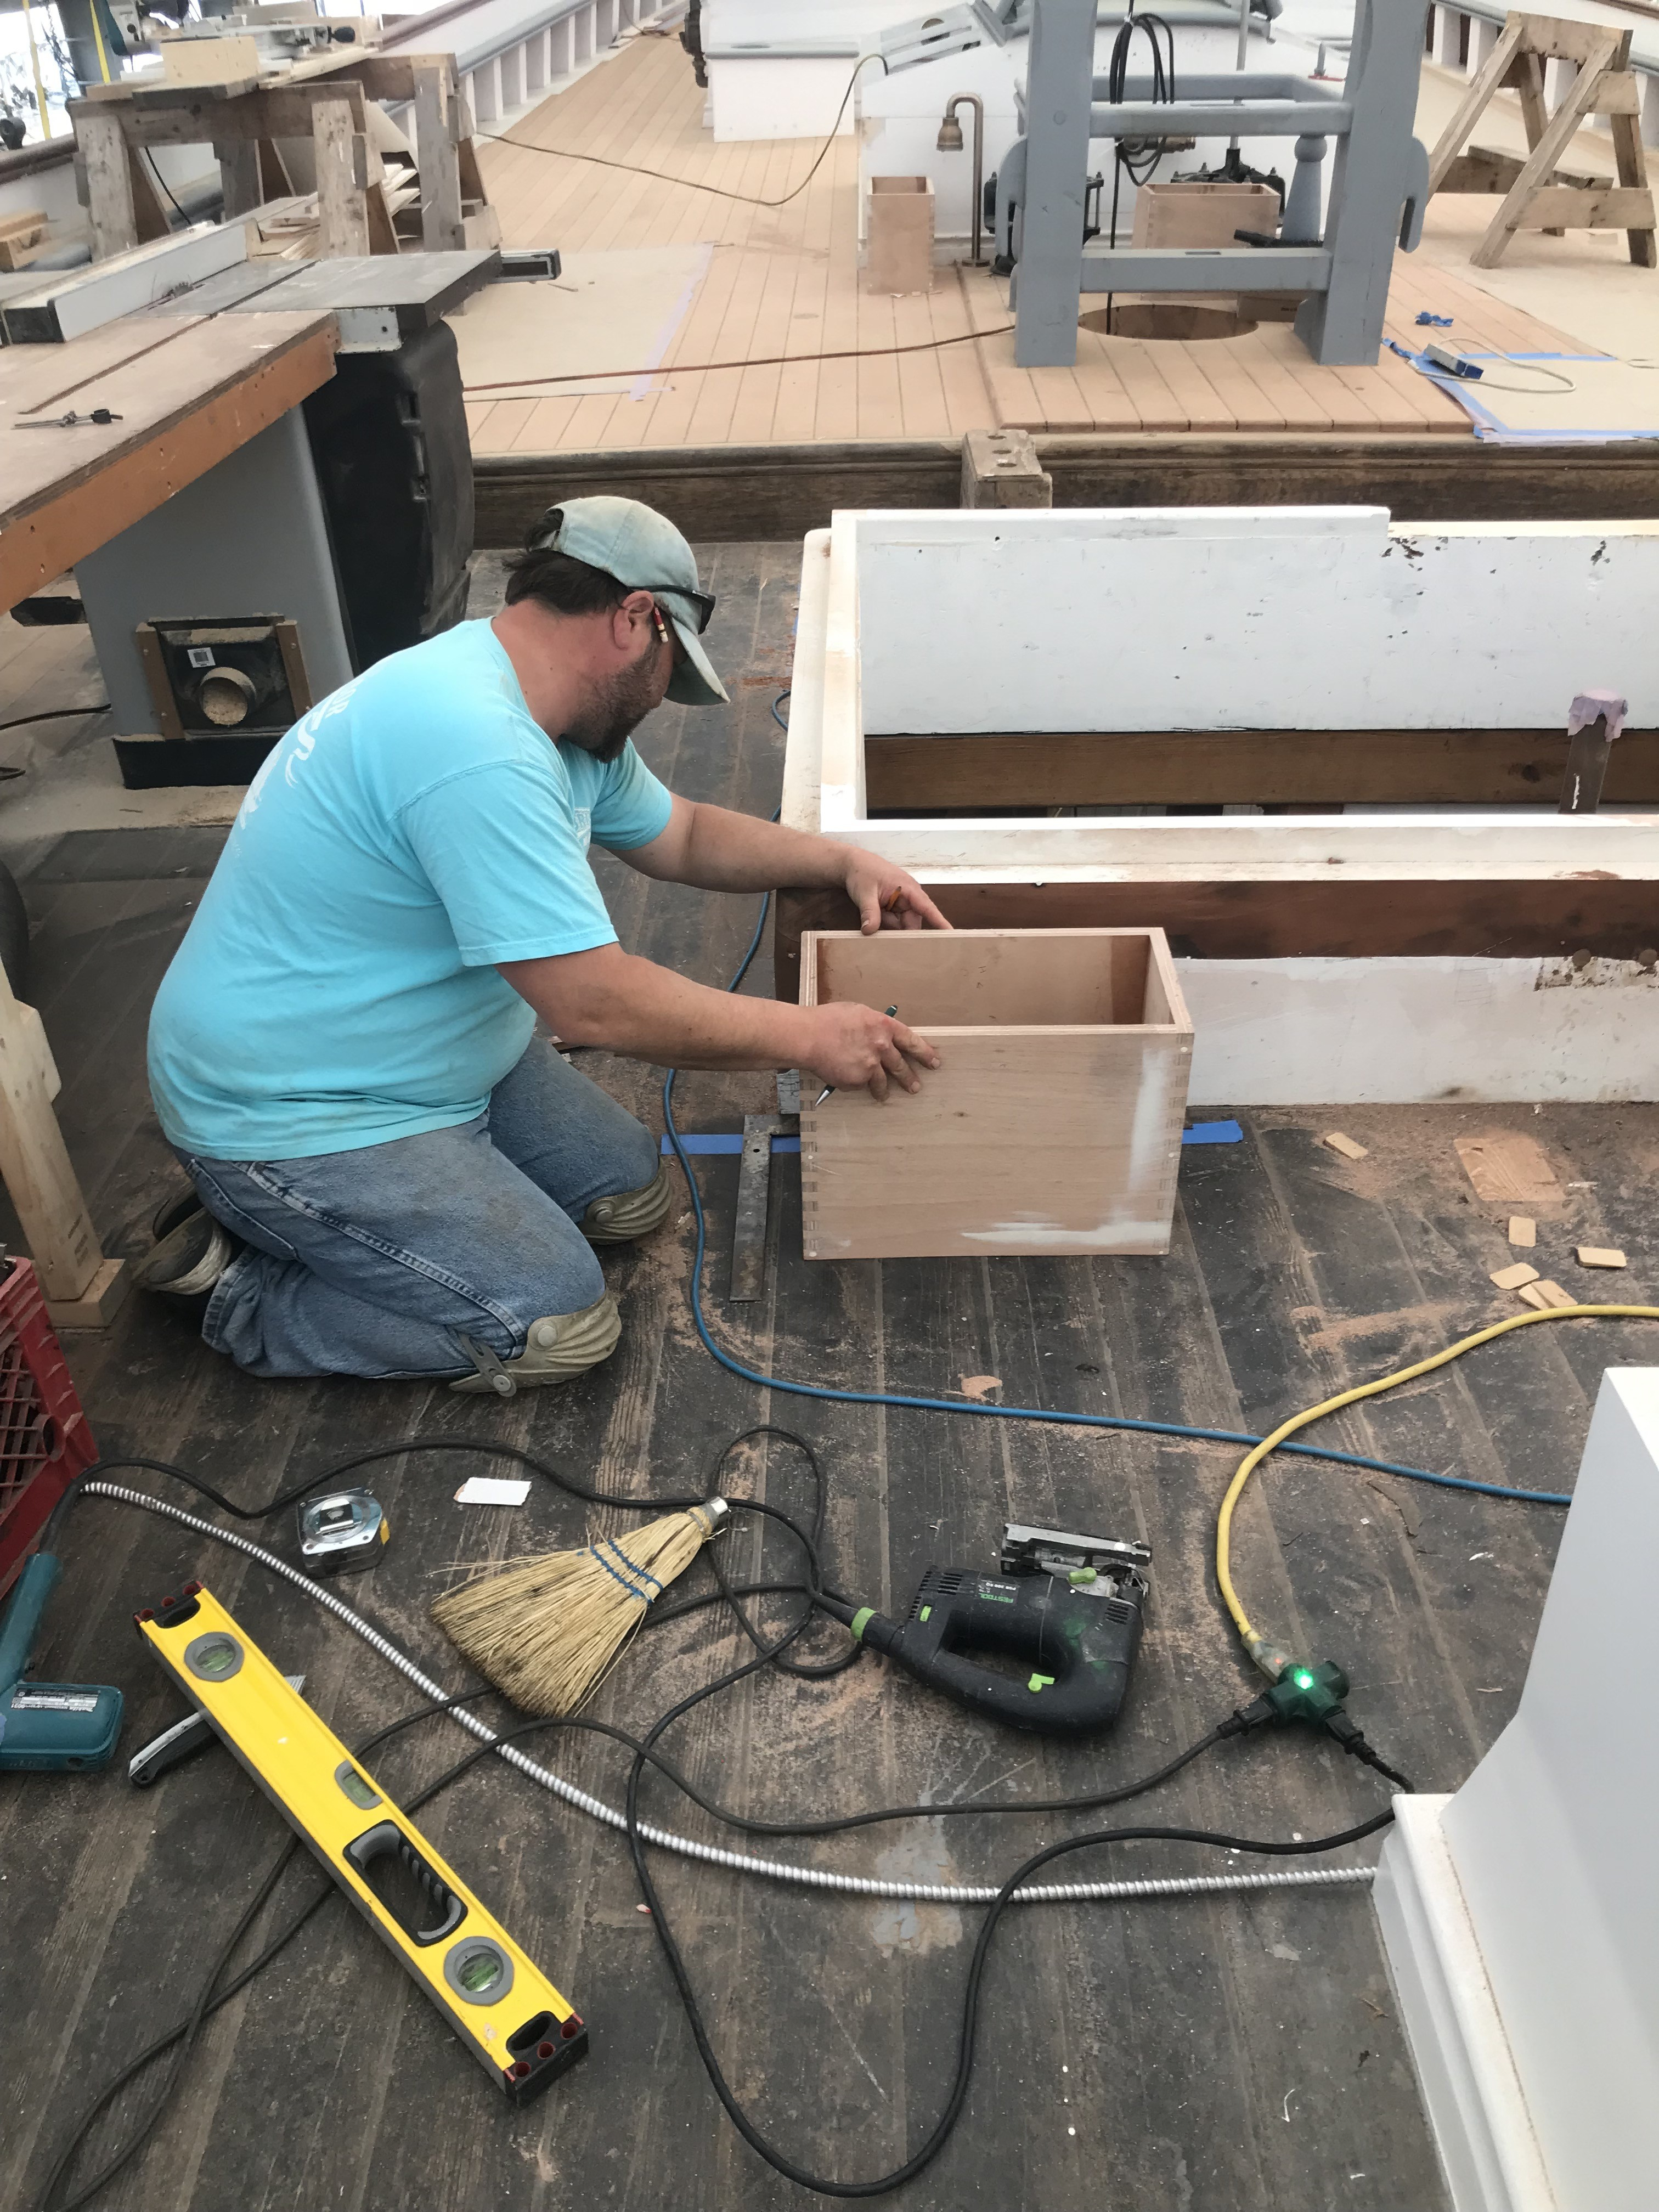 Jason Brassard is busy scribing the new dorade boxes to the deck in front of the Main Cabin Housetop.  These boxes will help maintain ventilation in the space all while keeping water from dripping into the interior.